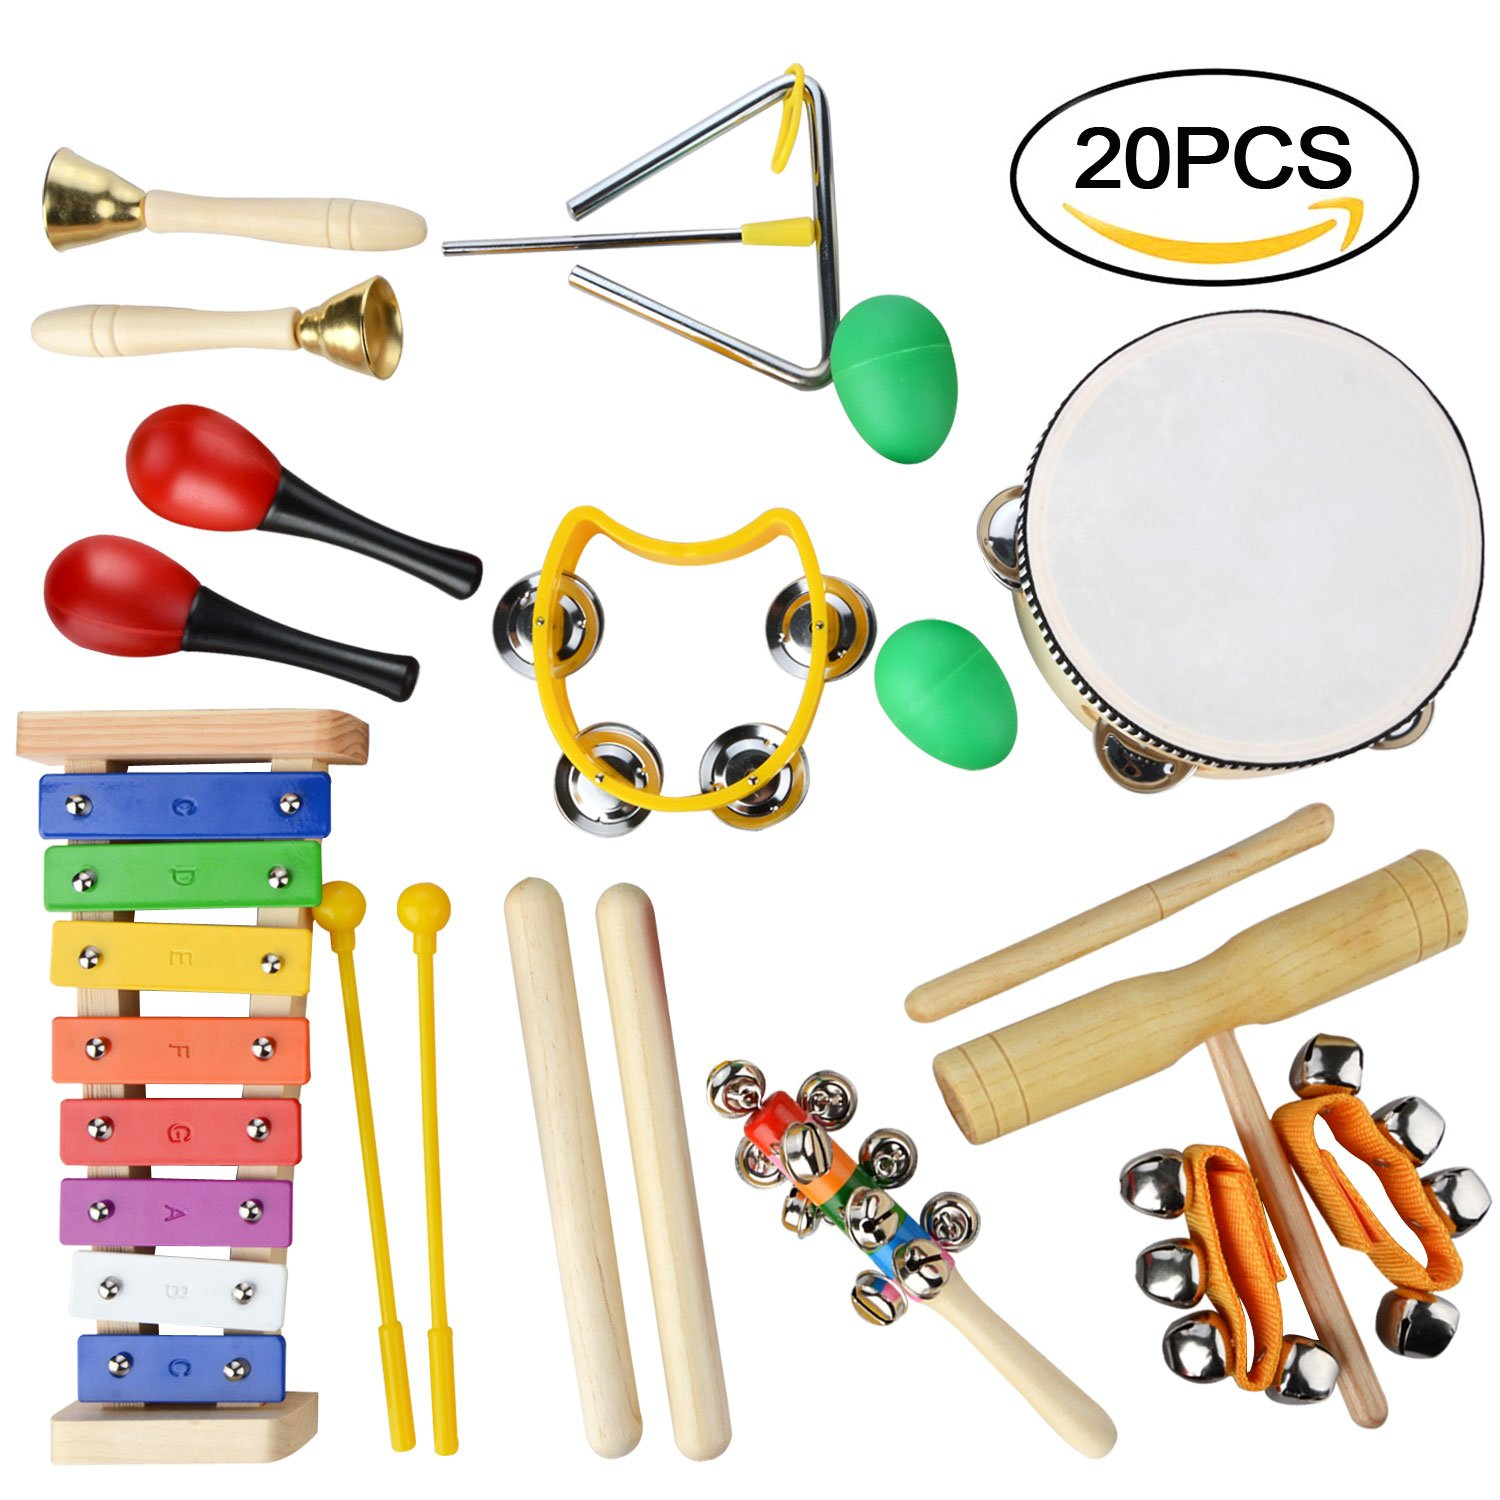 Music Instrument Toy Wooden Frame Style Xylophone Children Kids Musical Funny Toys Baby Educational Toys Gifts Strong Packing Toys & Hobbies Toy Musical Instrument